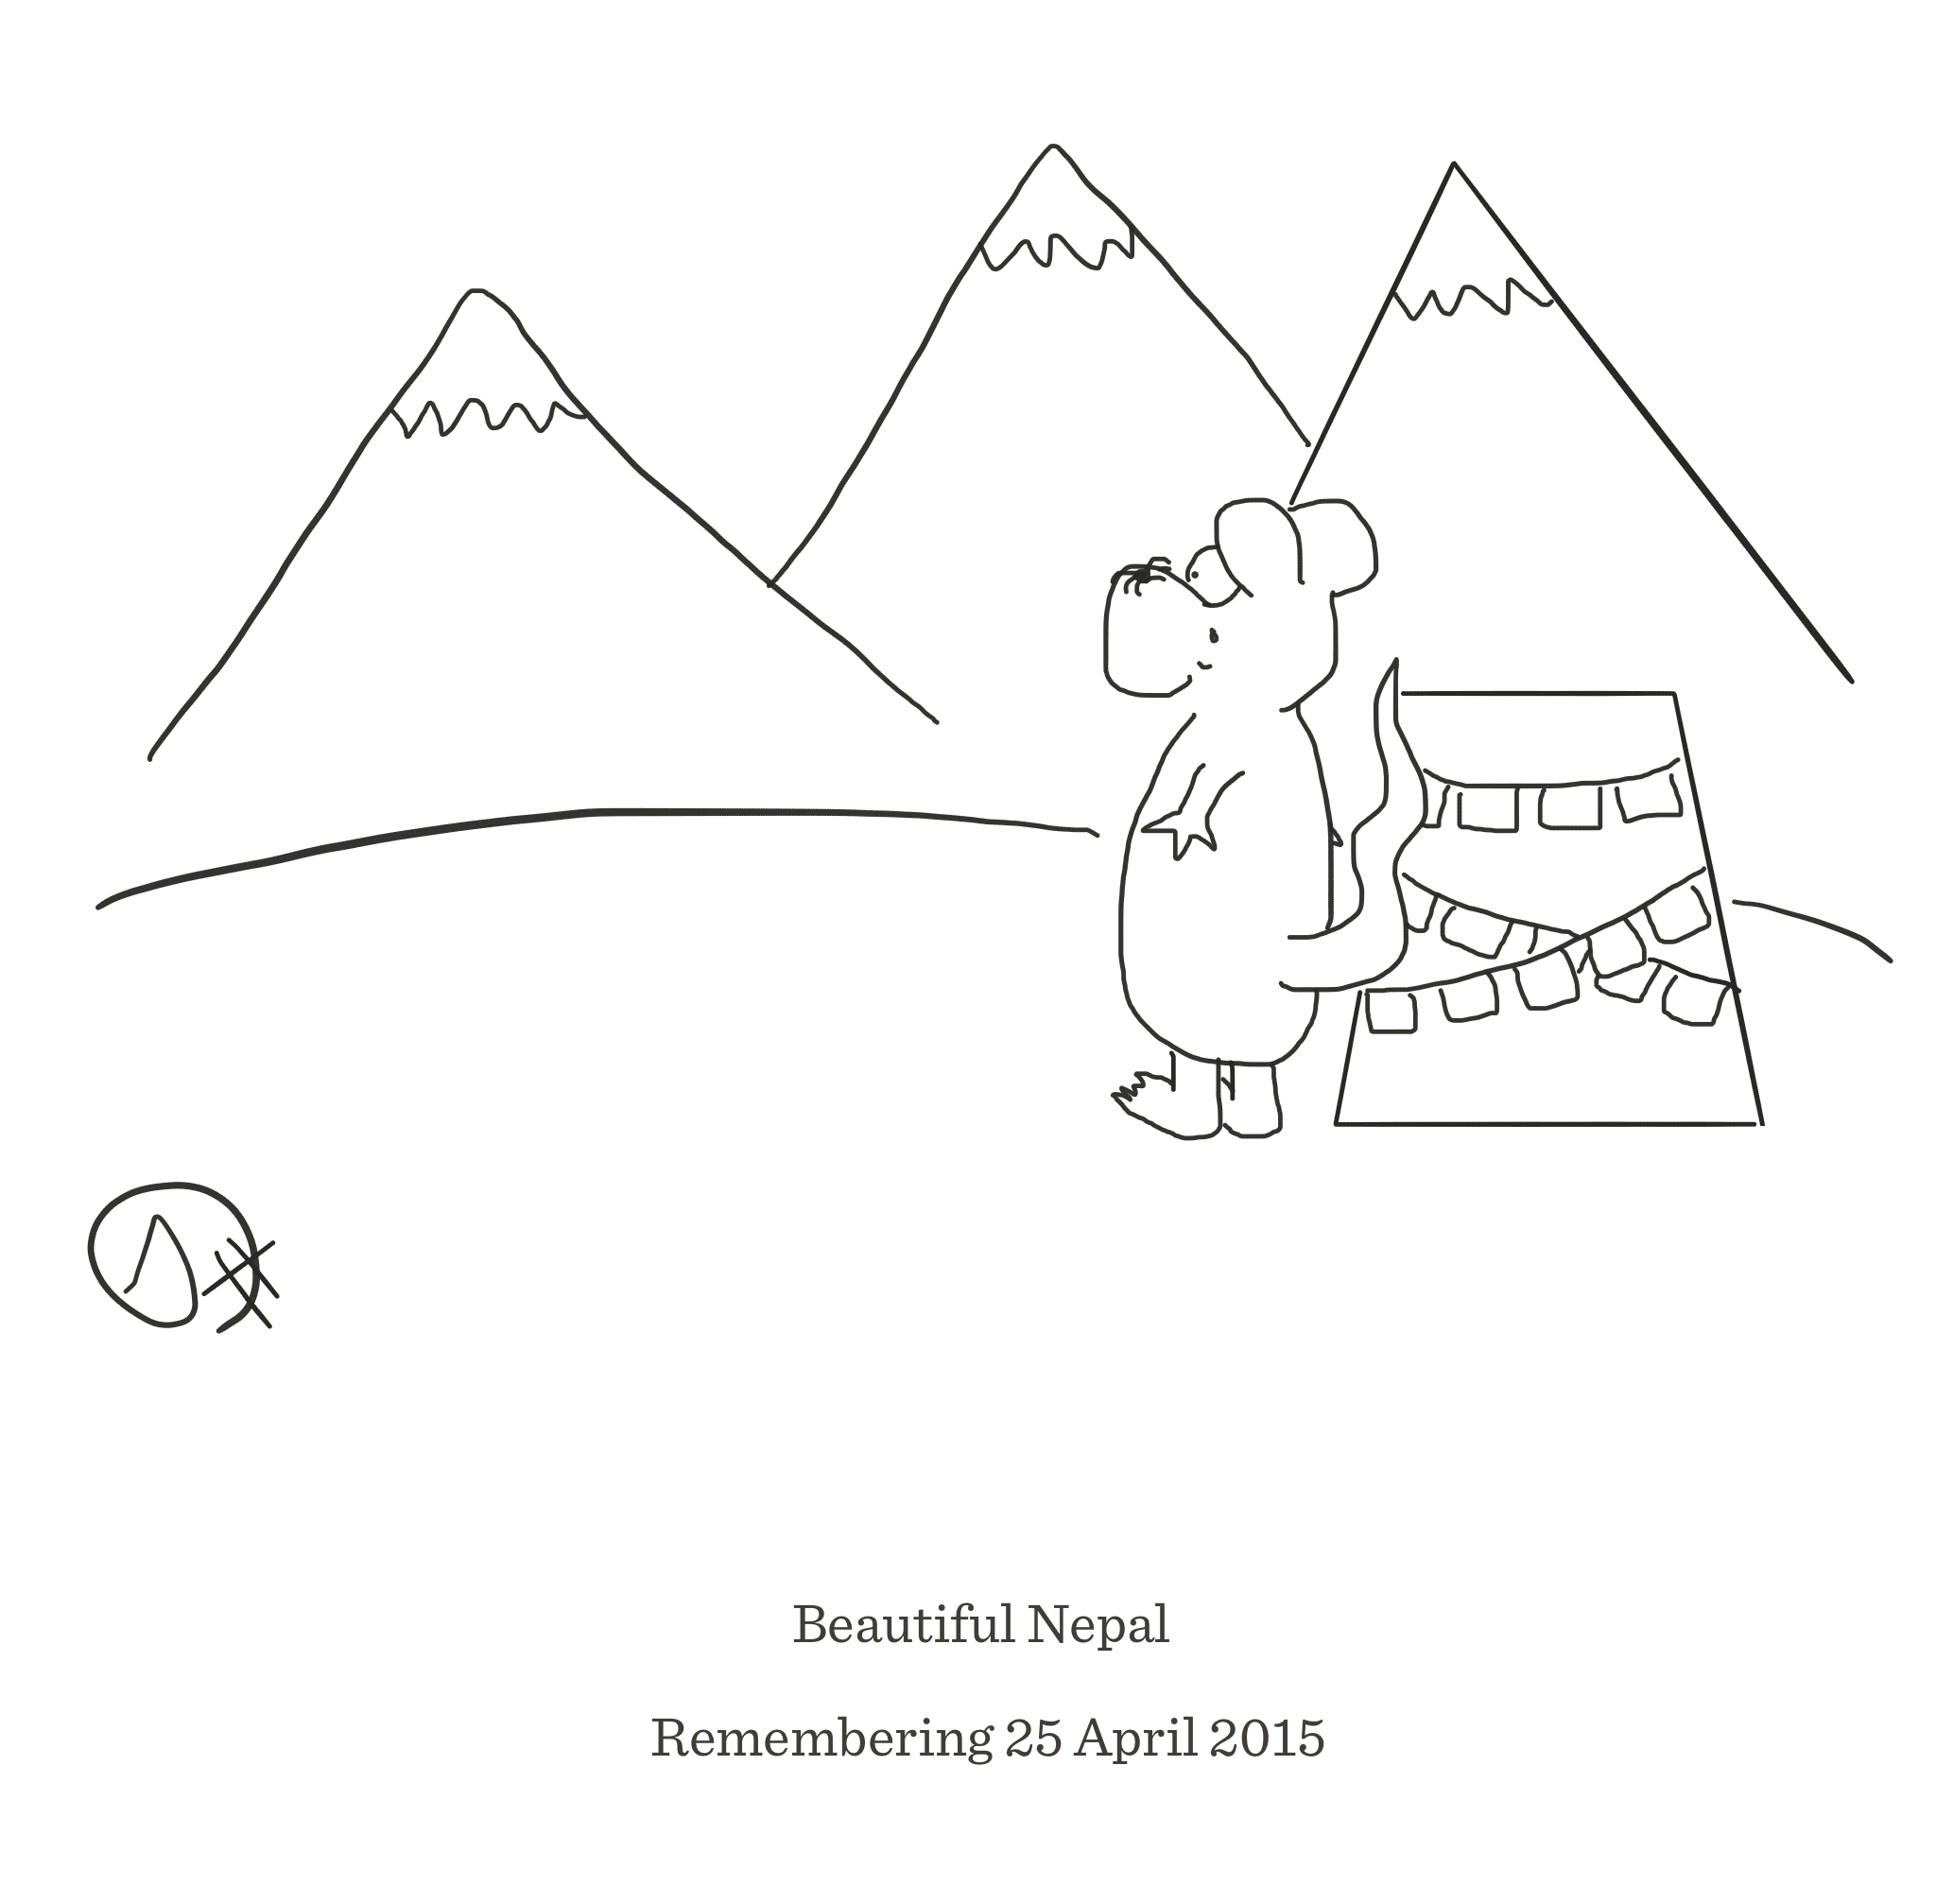 Remembering Nepal, The Happy Rat, Sarah Hunt